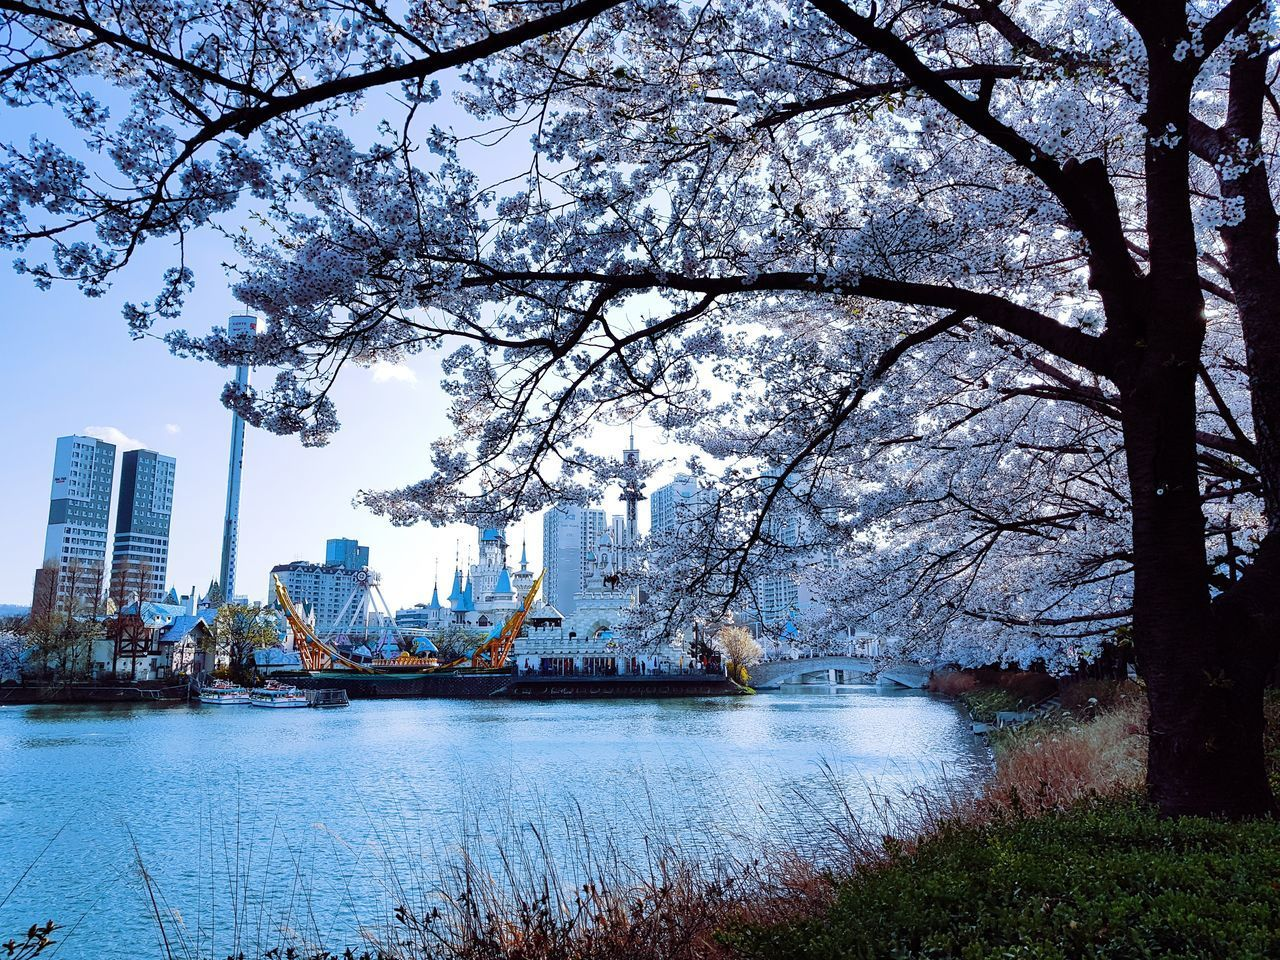 architecture, tree, building exterior, plant, water, built structure, city, nature, growth, branch, building, no people, sky, blossom, day, flower, outdoors, river, flowering plant, springtime, cherry blossom, office building exterior, skyscraper, cityscape, cherry tree